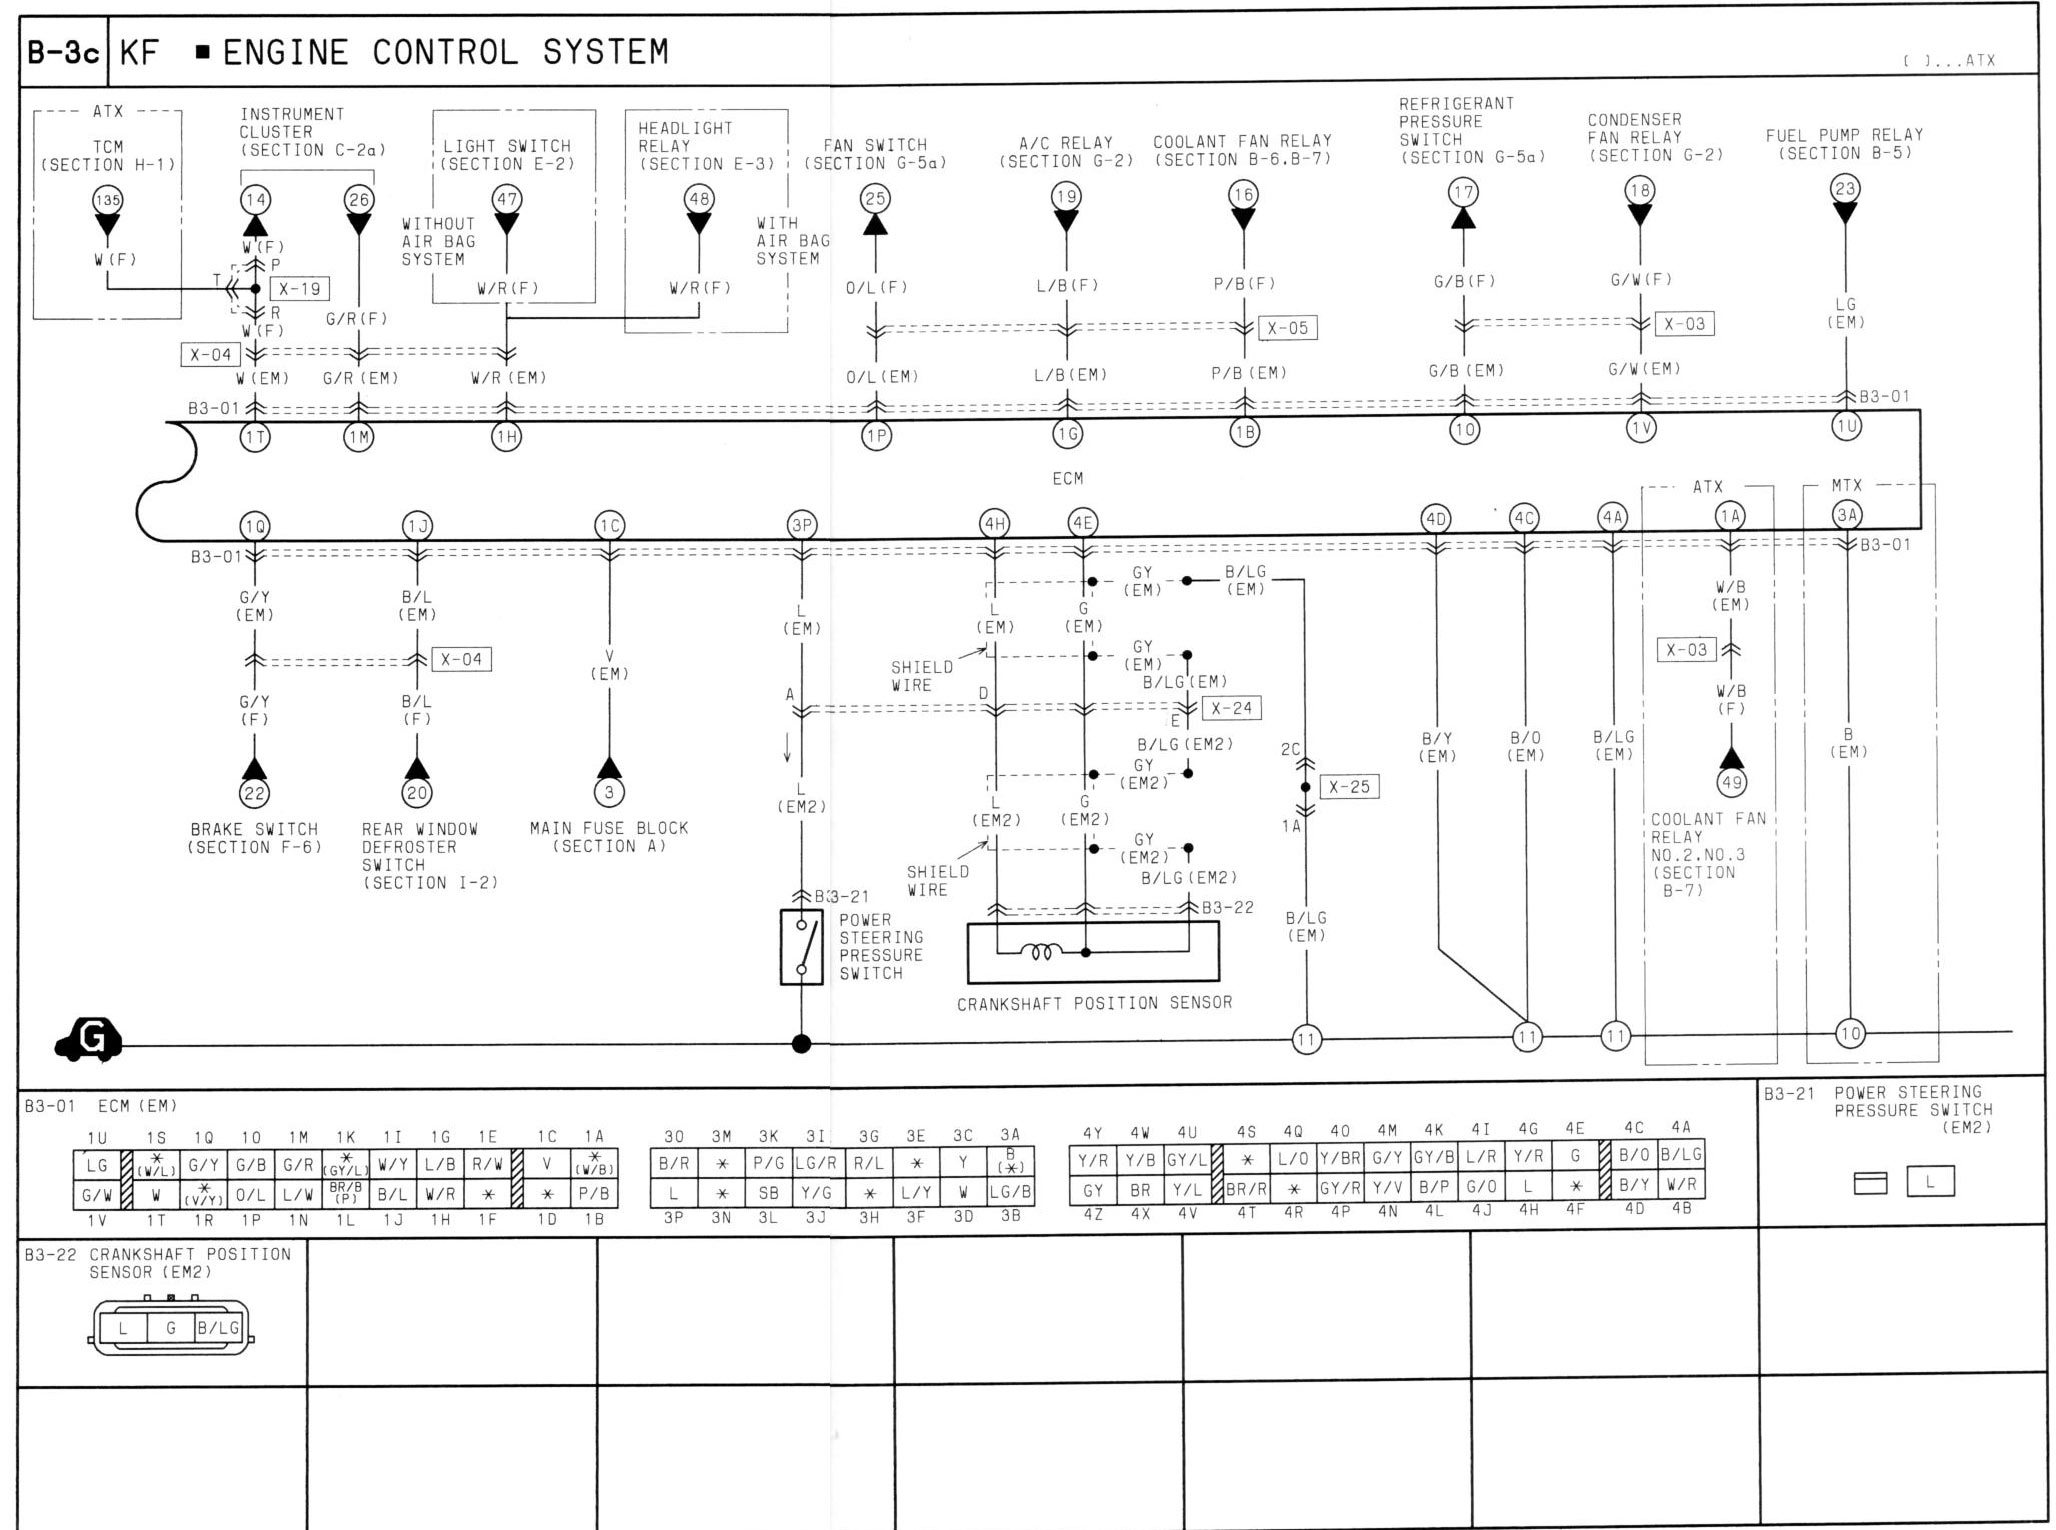 Mazda 323 1994 wiring diagram wiring diagram database lantis 2 0 v6 wiring diagram needed astinagt forums rh astinagt com mazda 323 bj relay diagram 1986 mazda b2000 wiring diagram cheapraybanclubmaster Image collections